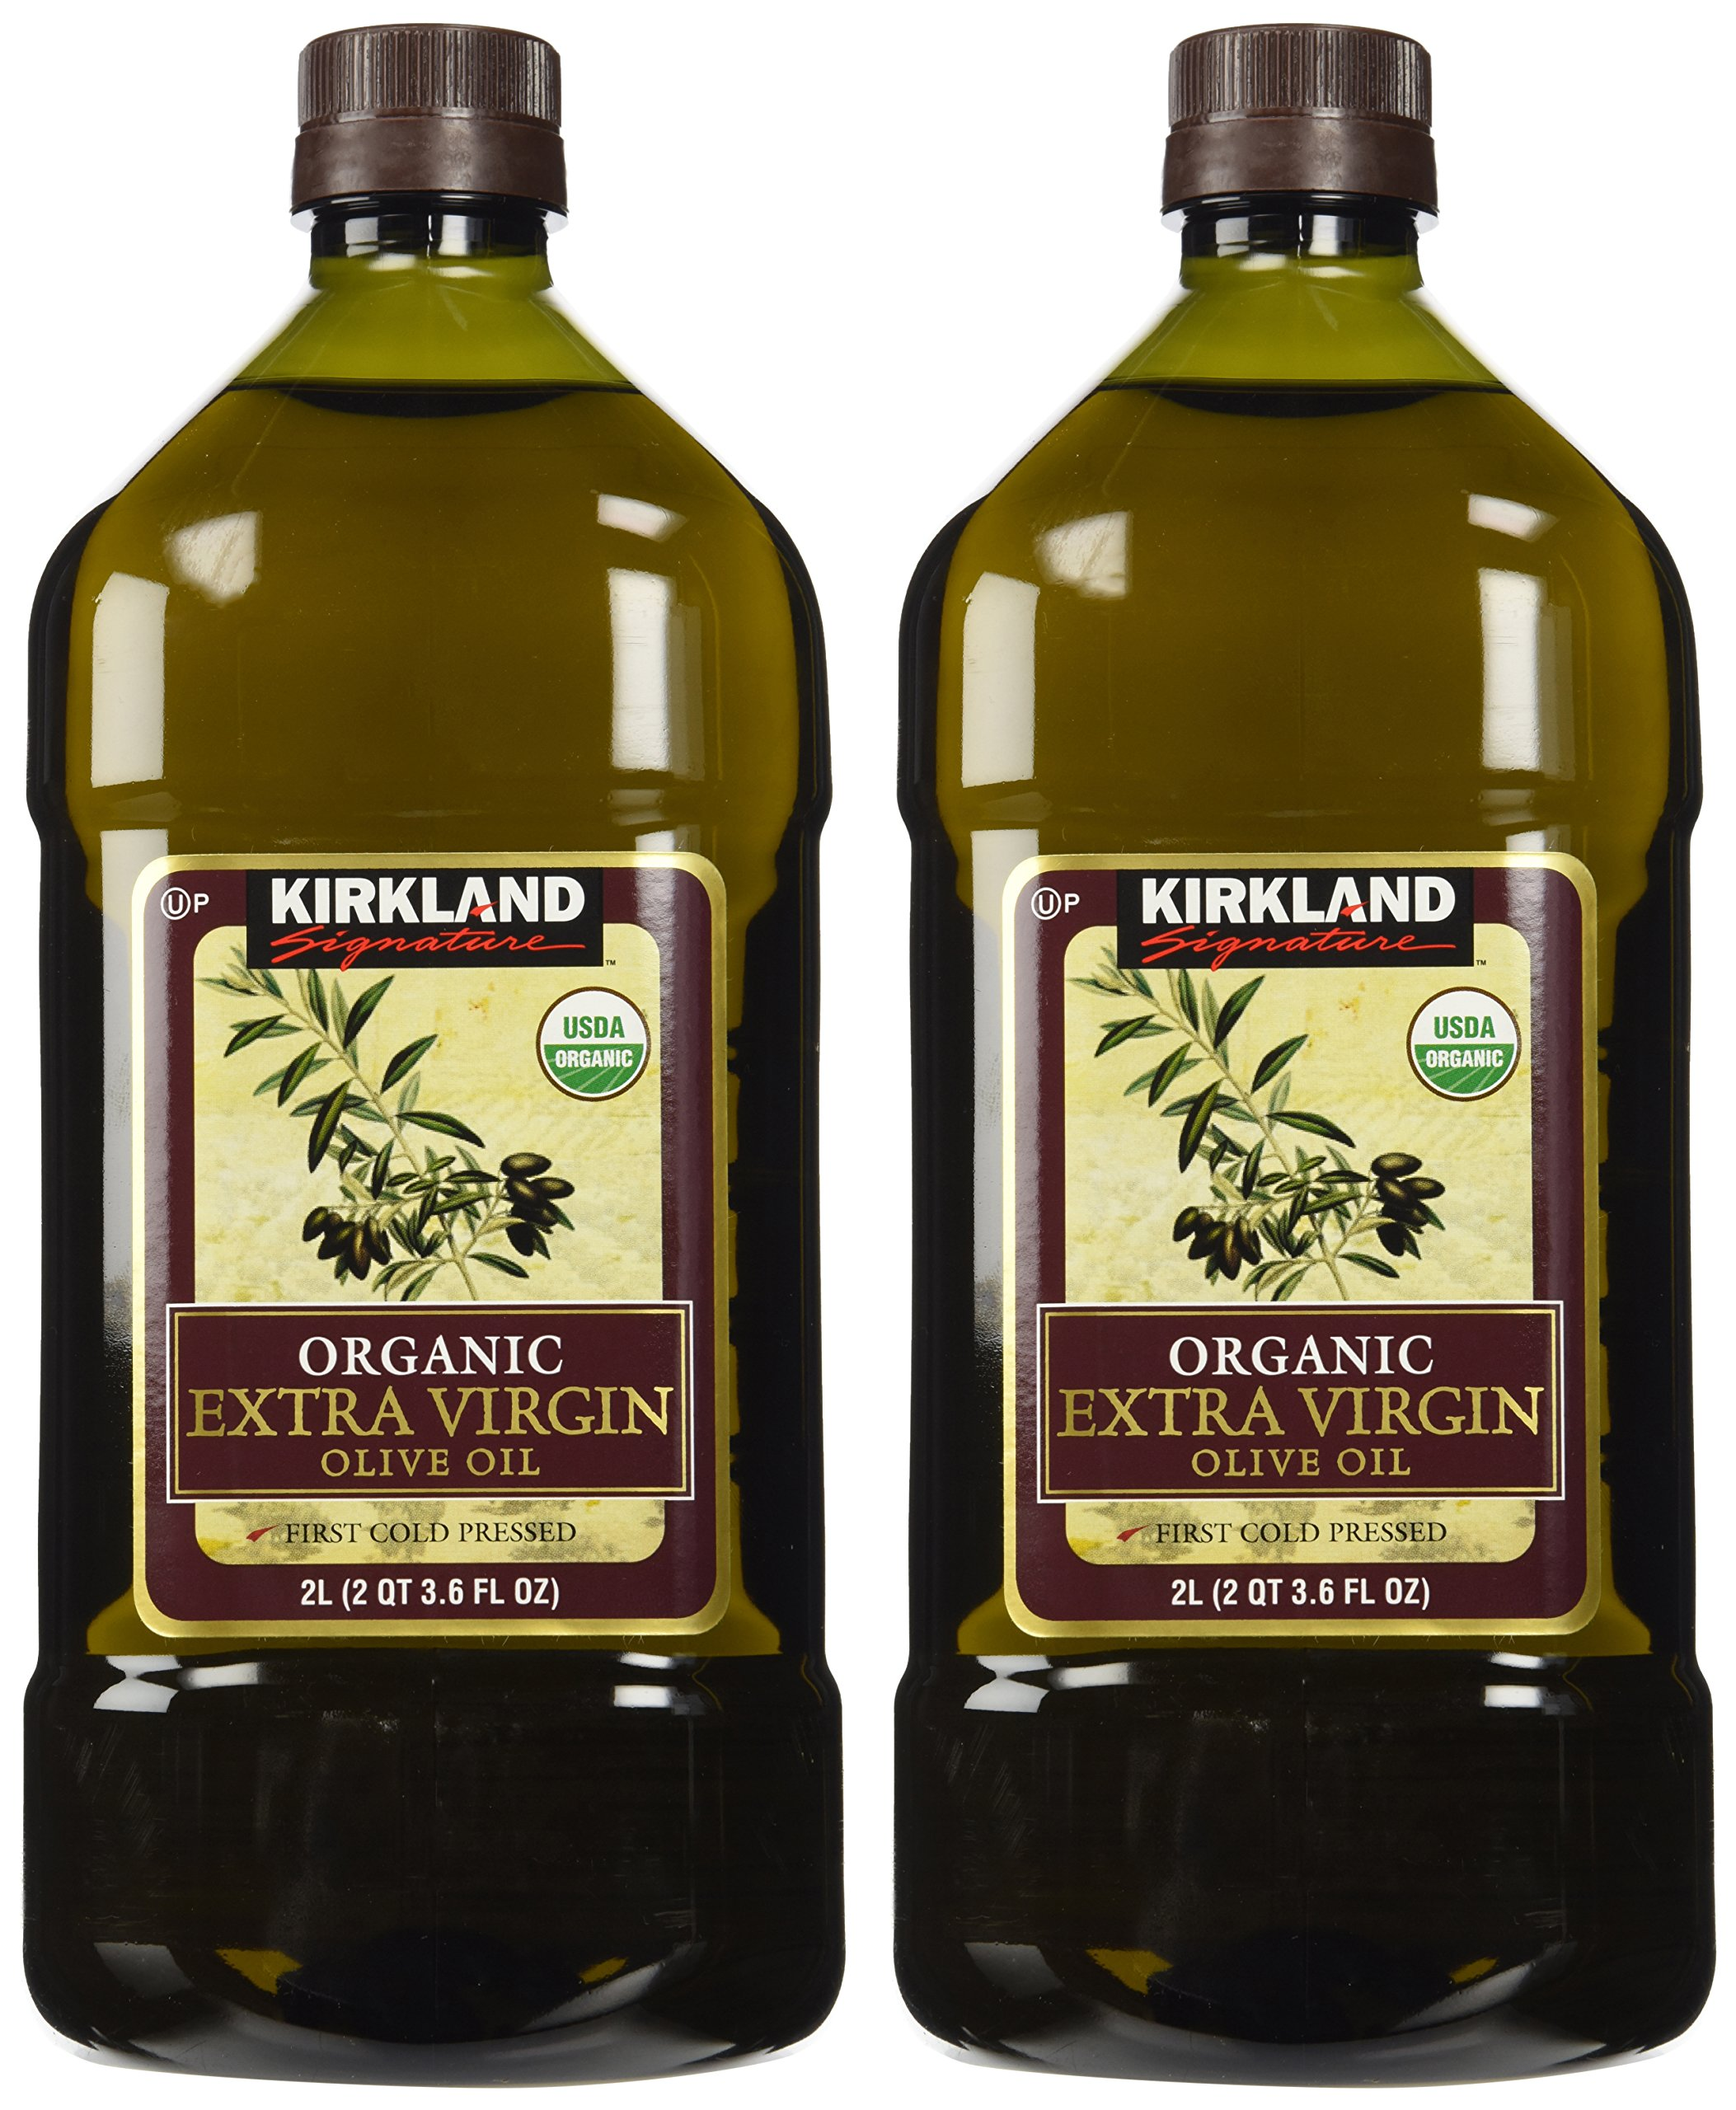 2 x Kirkland Signature Organic Extra Virgin Olive Oil, 2 Liters